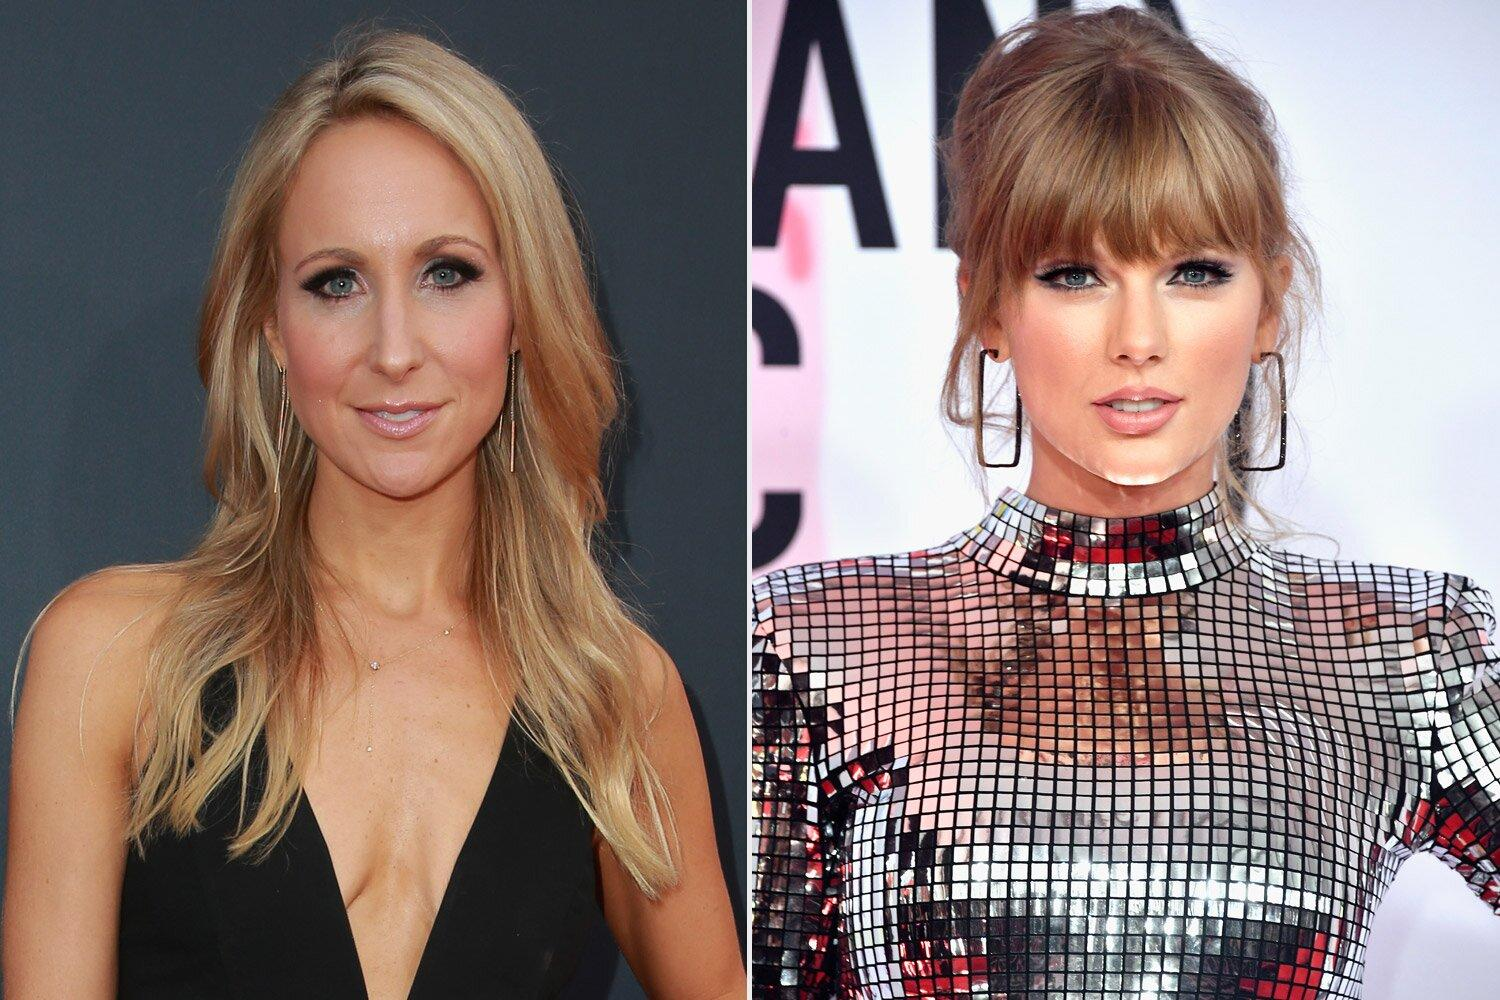 Nikki Glaser Apologizes To Taylor Swift For Body Shaming Comments Included In Miss Americana In the united states on comedy central, in canada on much, and in the united kingdom on 4music. nikki glaser apologizes to taylor swift for body shaming comments included in miss americana